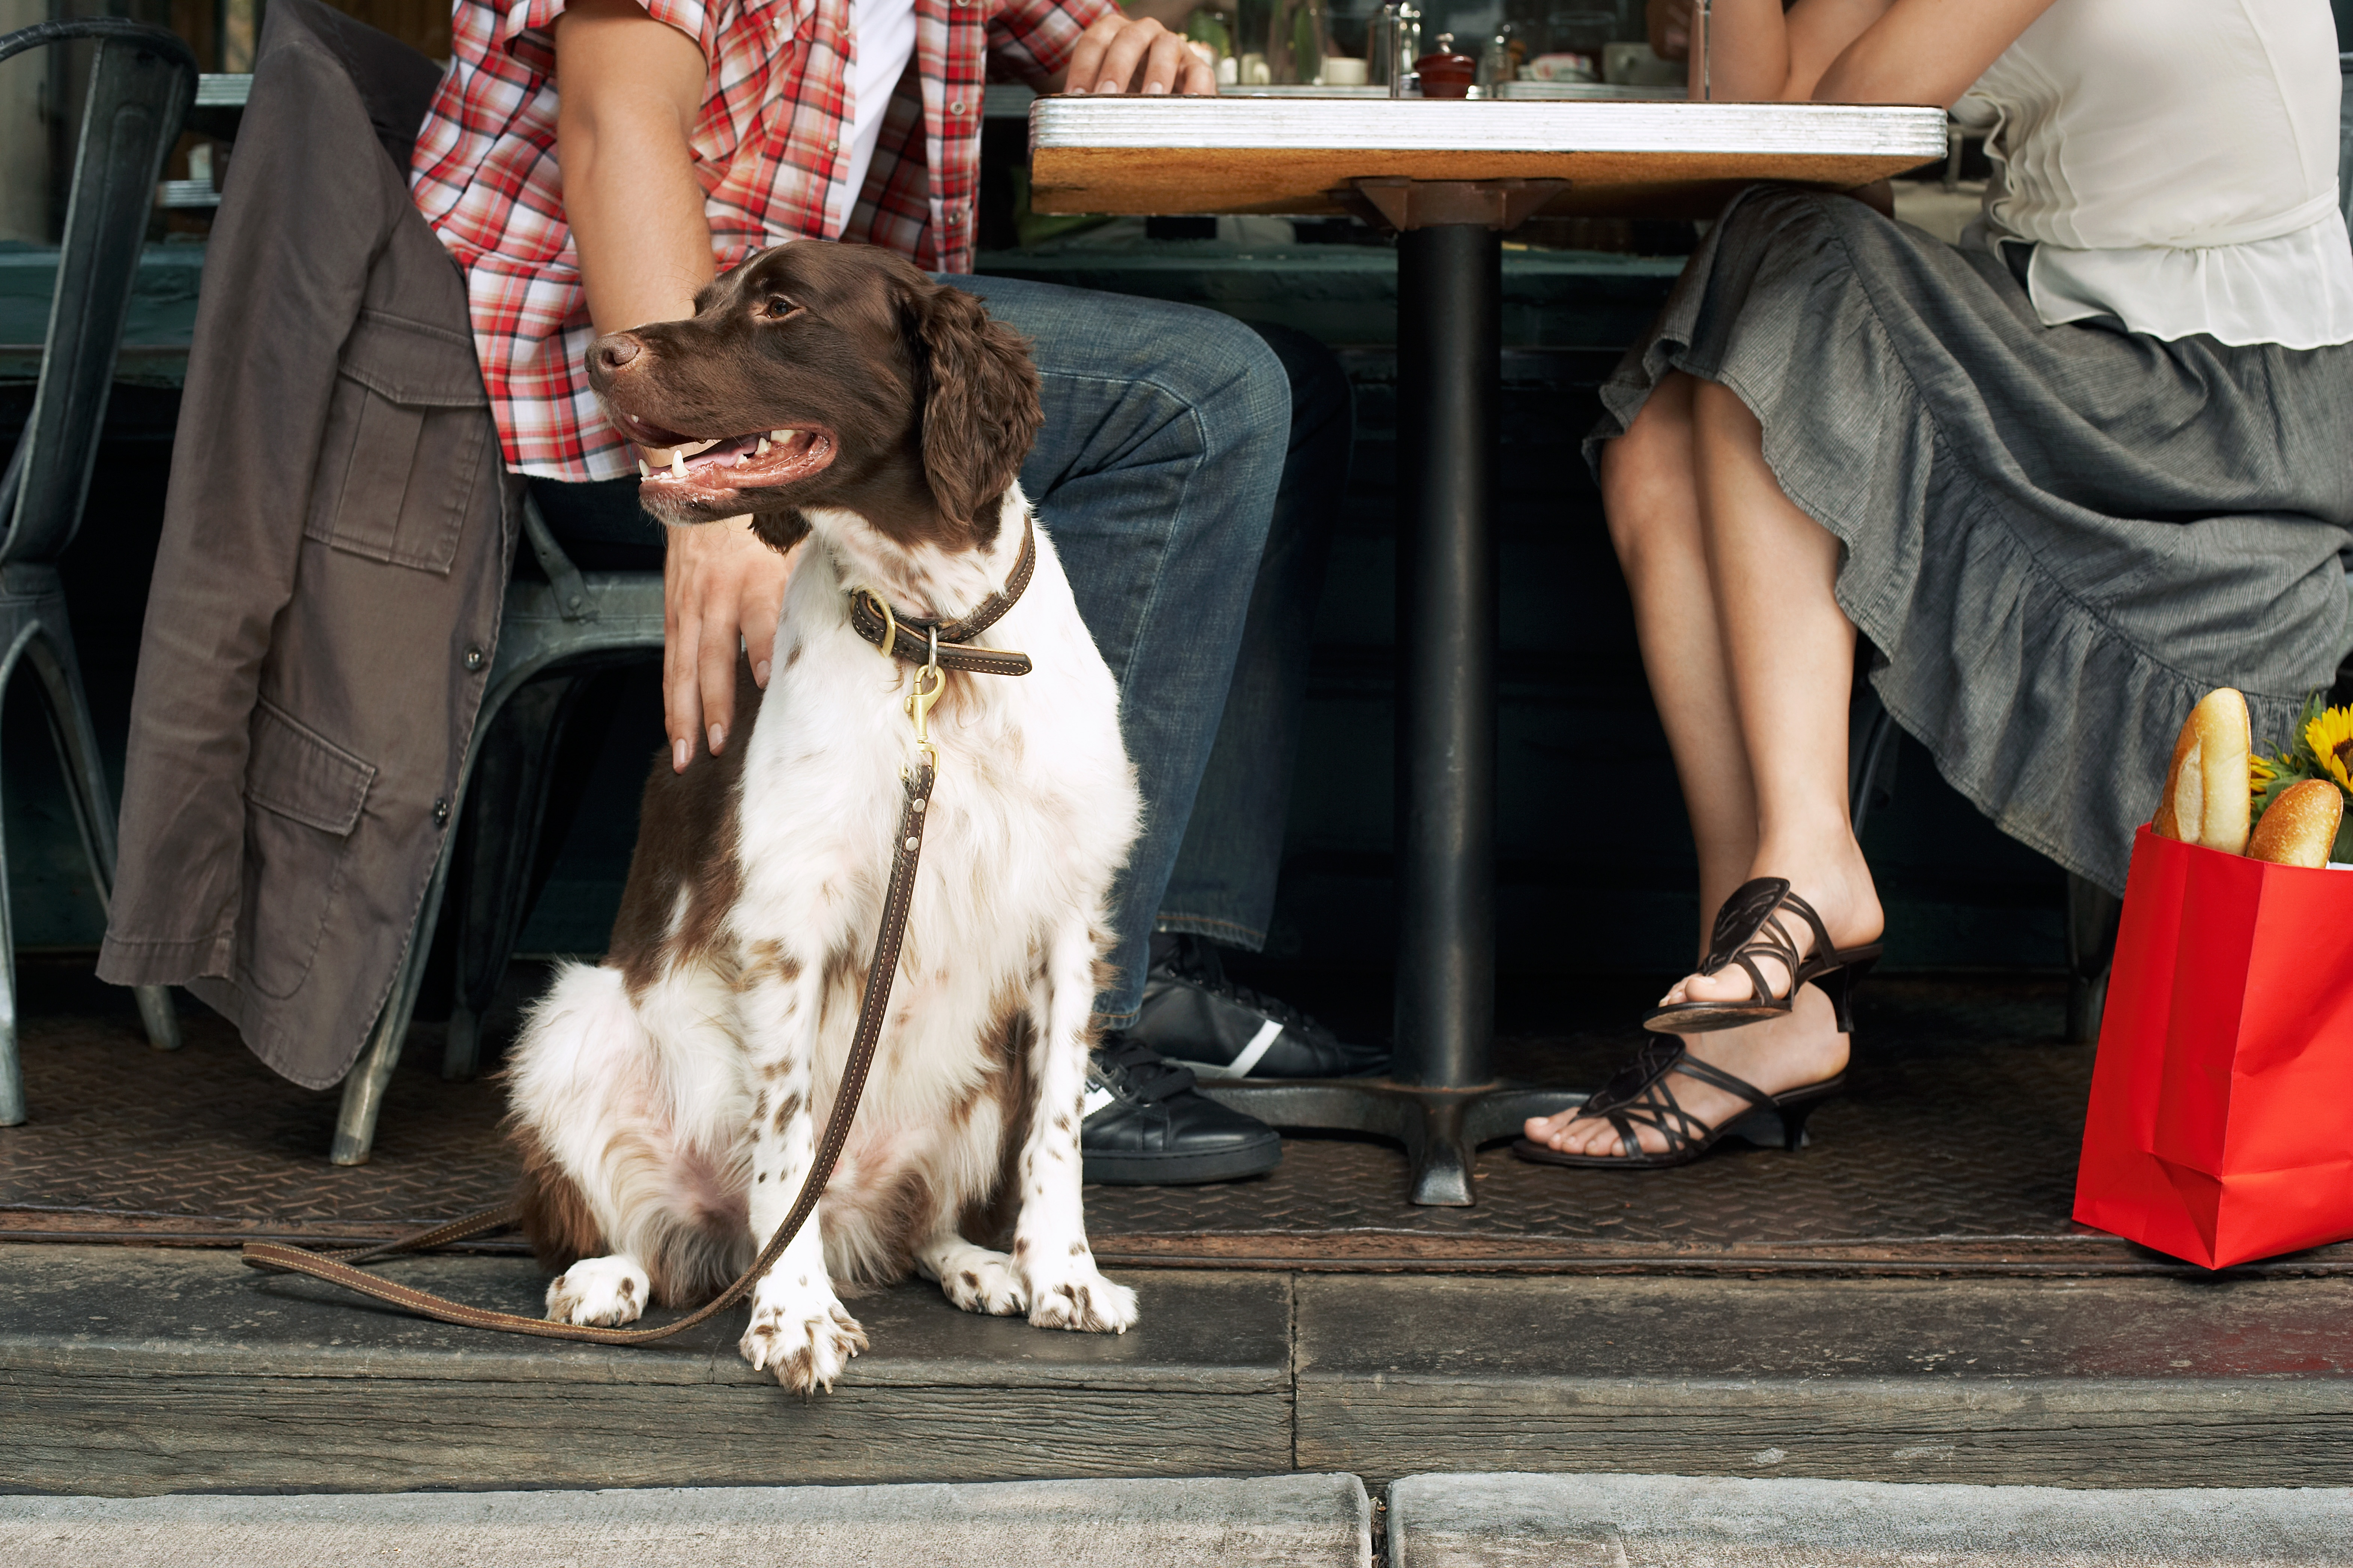 Ensuring Food Safety and Building Customer Loyalty in Dog-friendly Restaurants